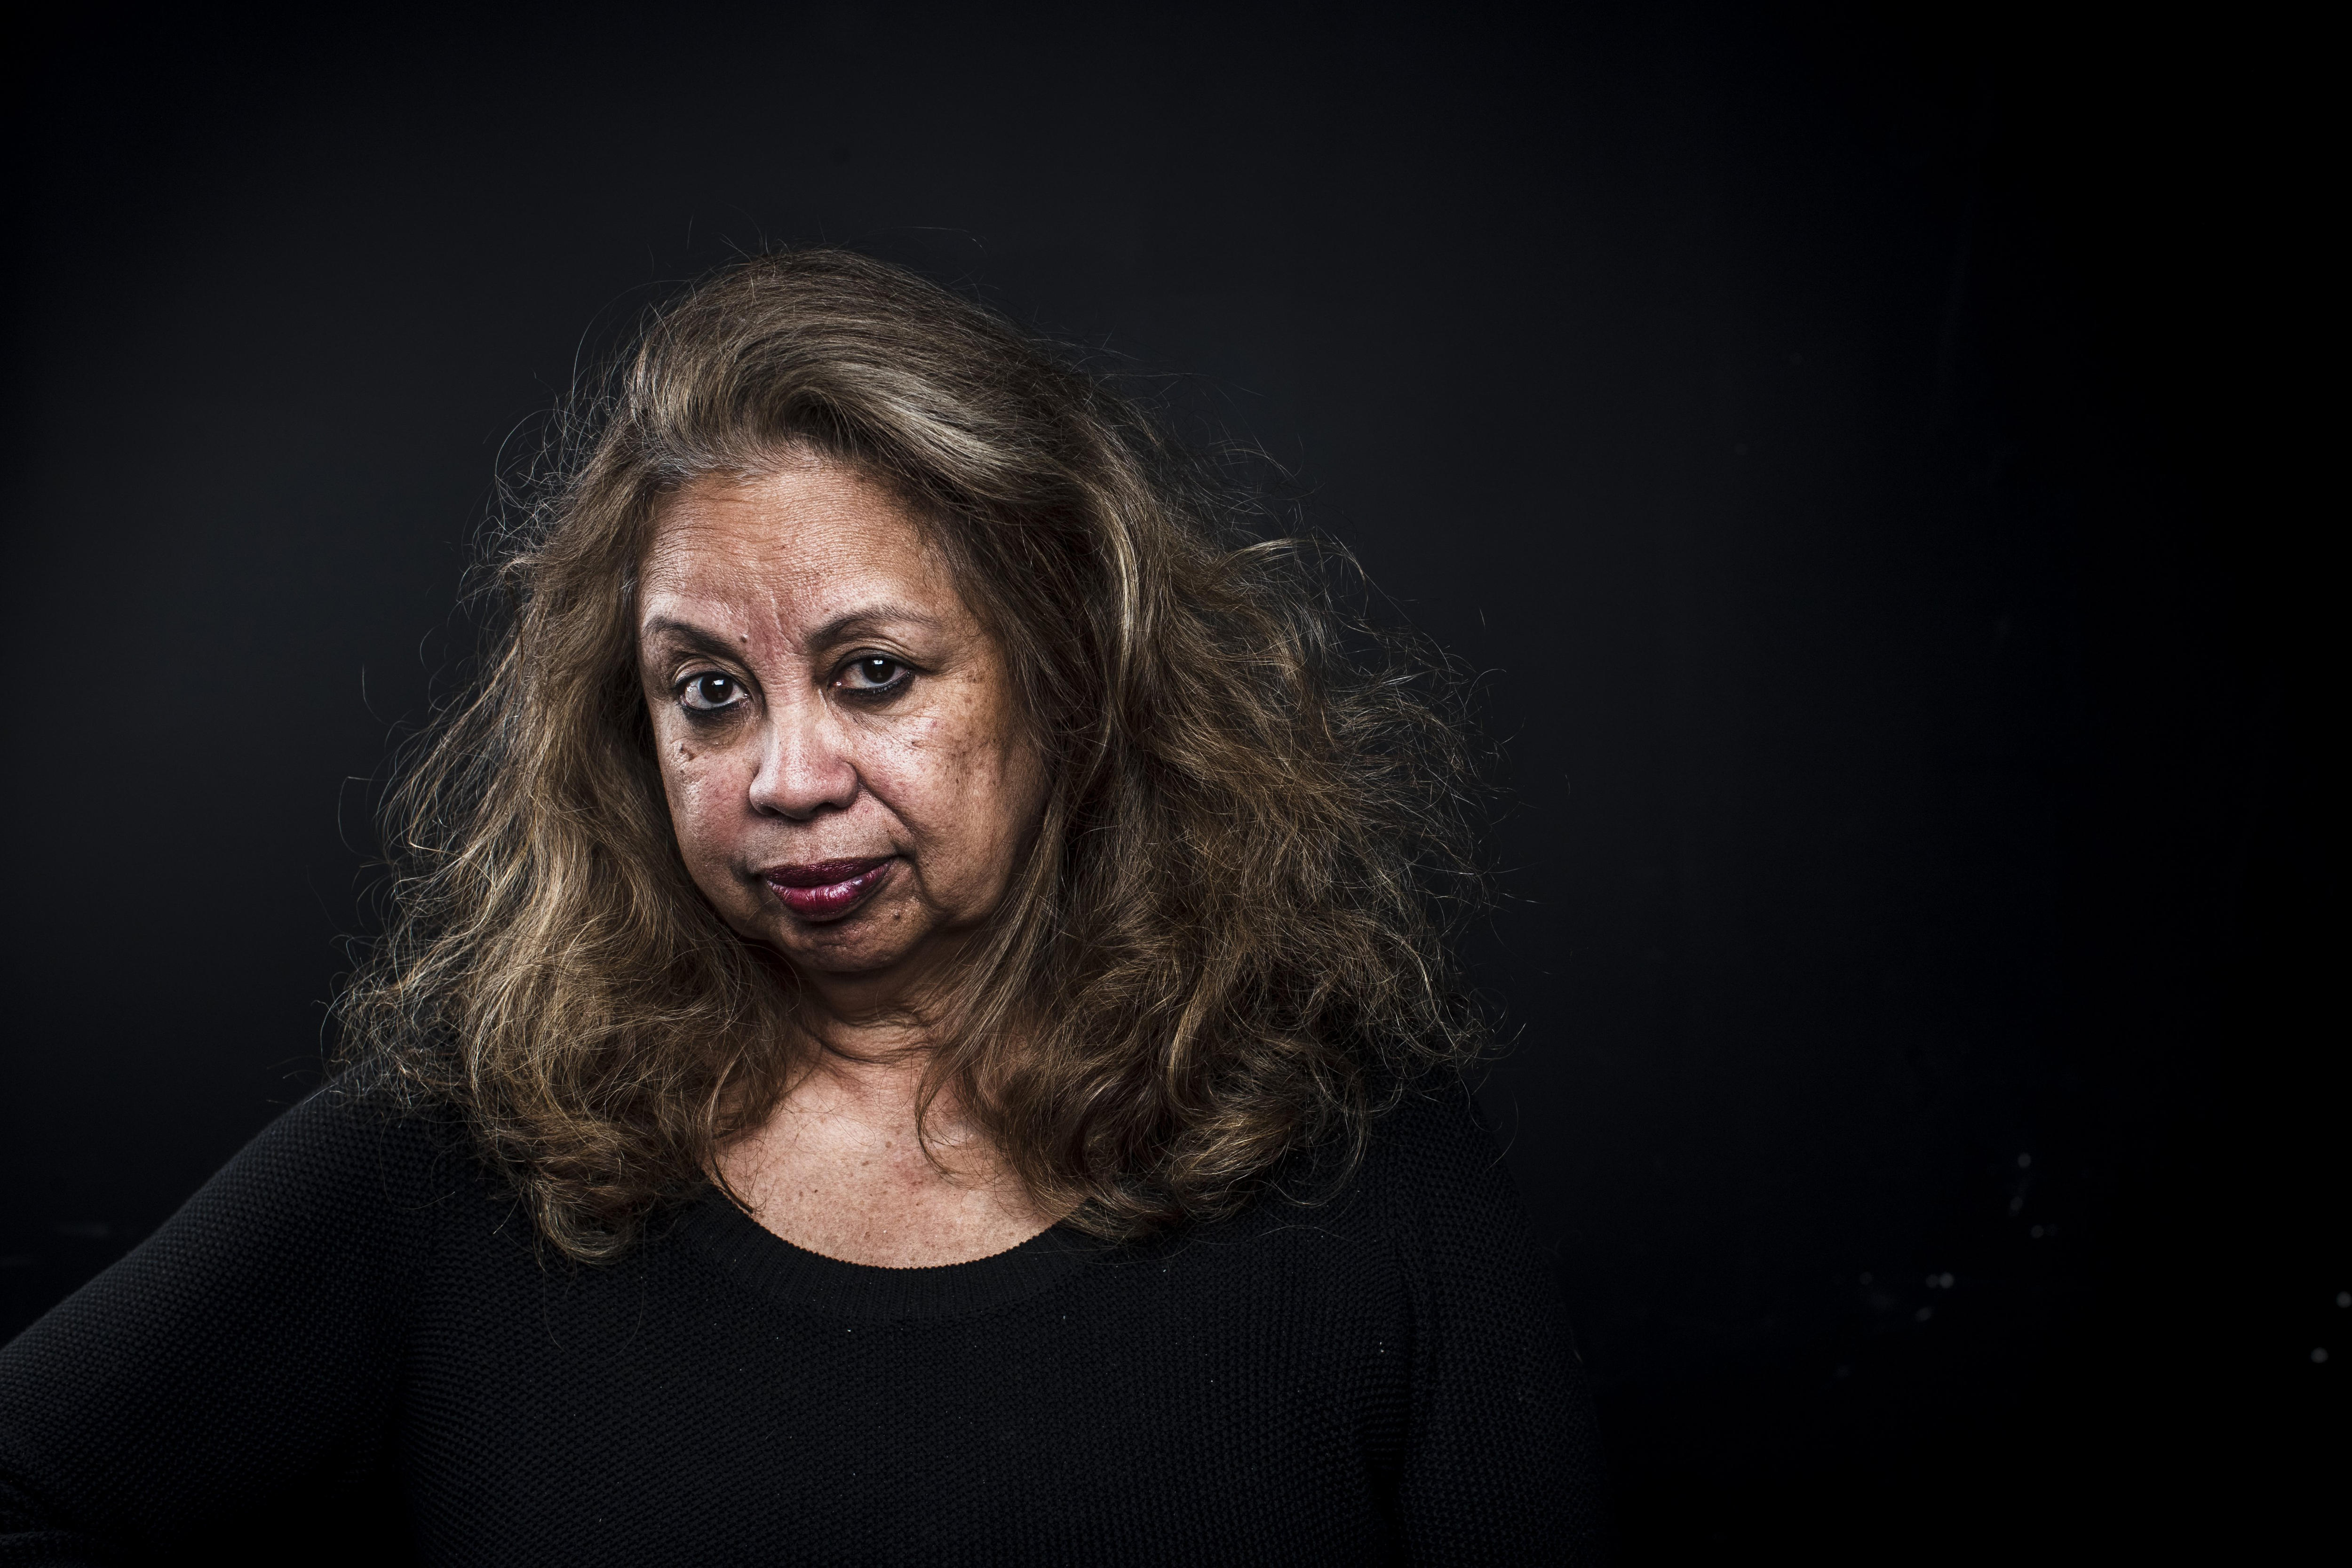 A portrait shows Dr Anae against a black background. Looking strong and straight at the camera.